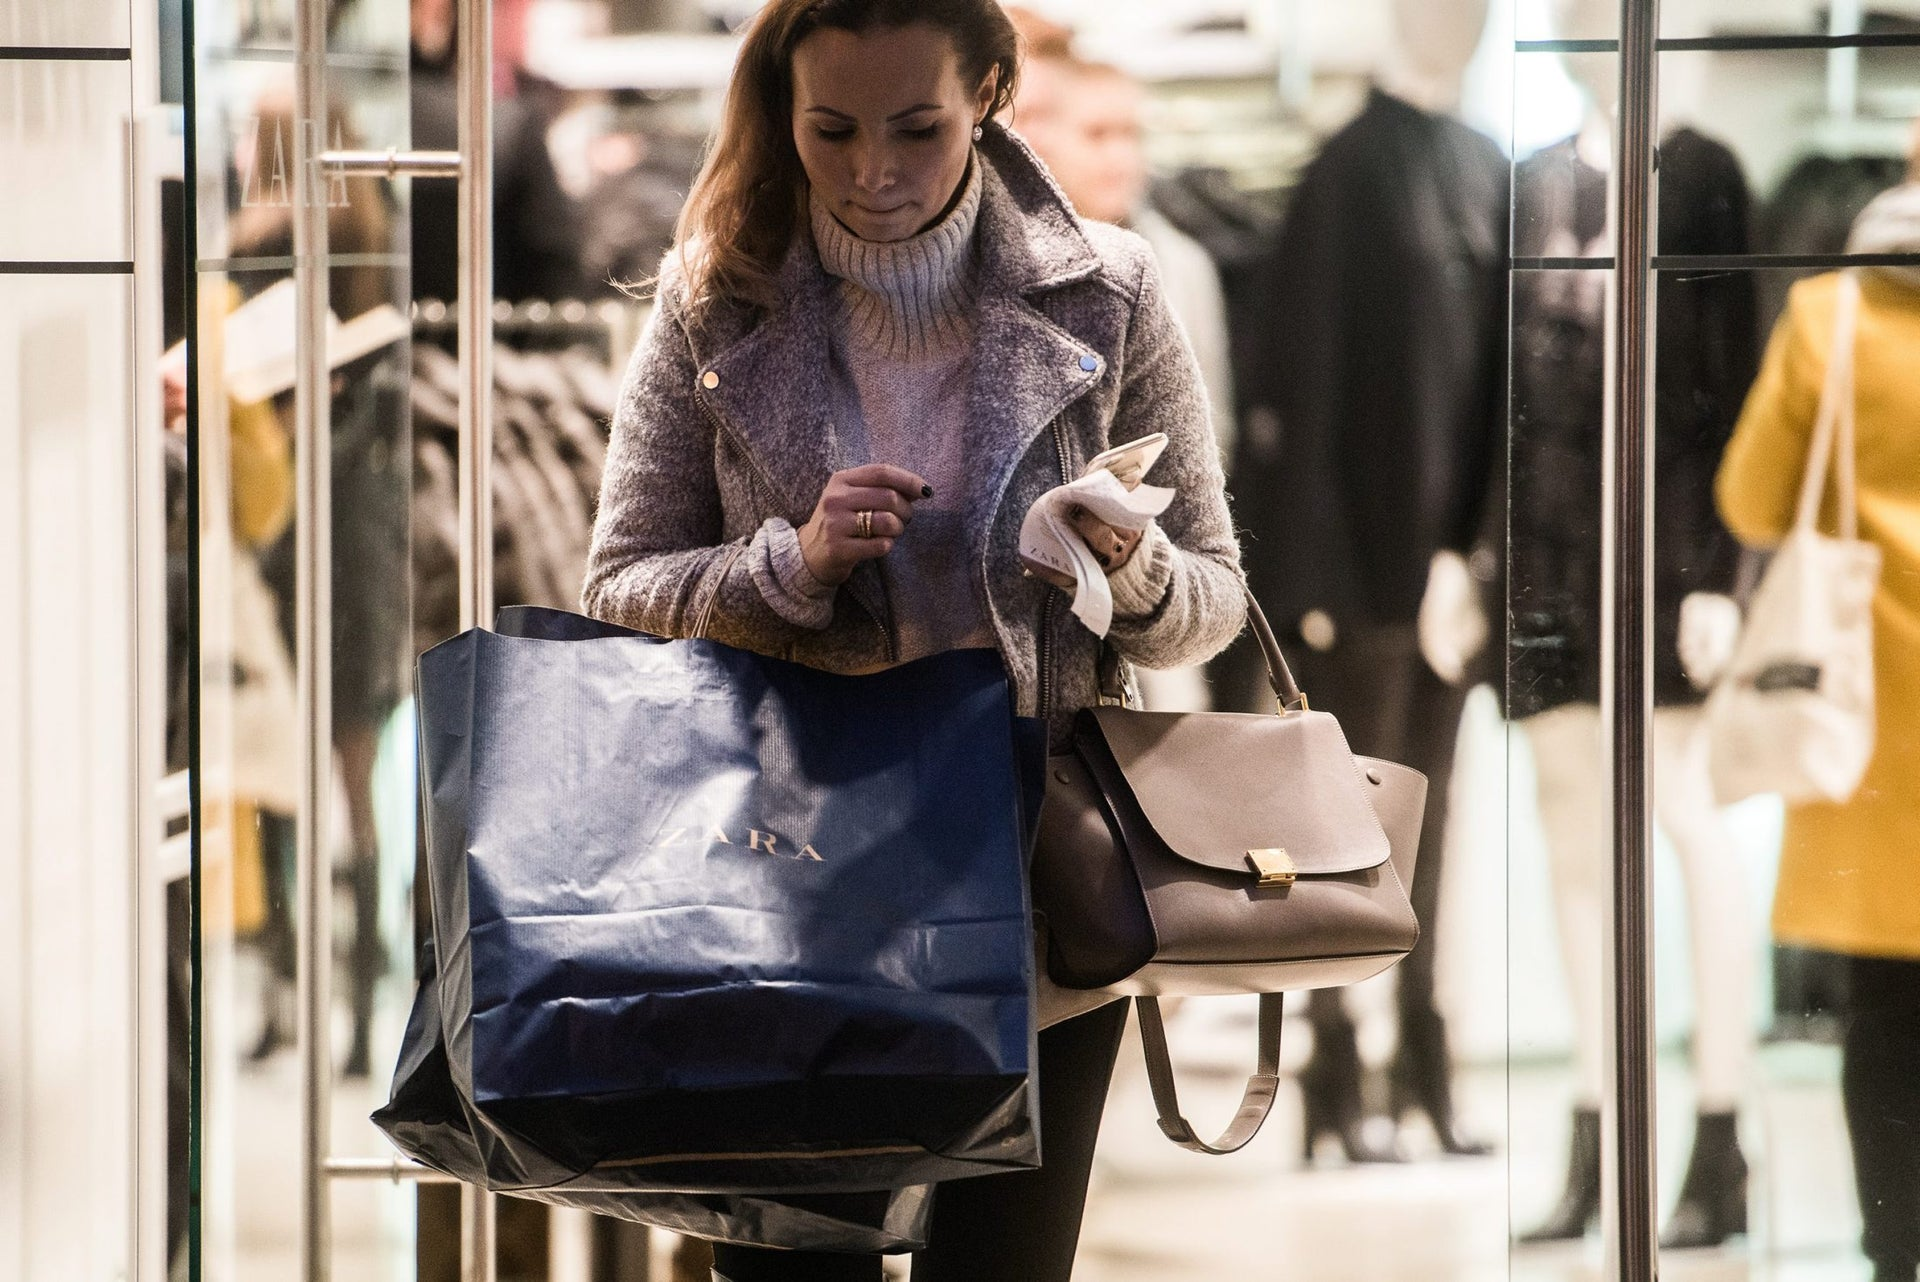 A shopper carries a branded shopping bag as she exits a Zara fashion store, operated by Inditex SA, in Budapest, Hungary, Dec. 5, 2015.